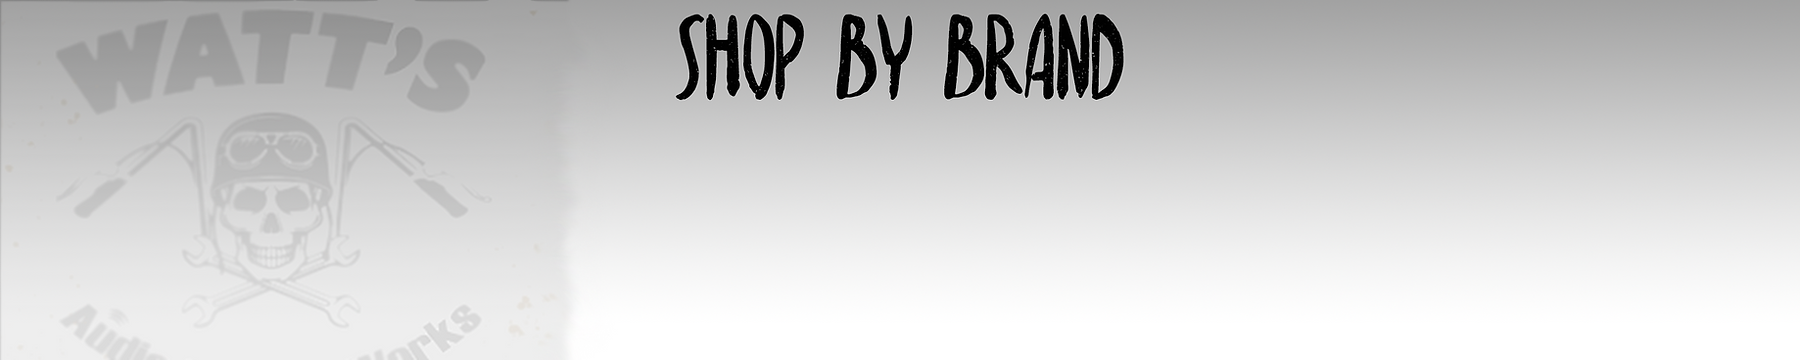 ShopbyBrandMenu.png